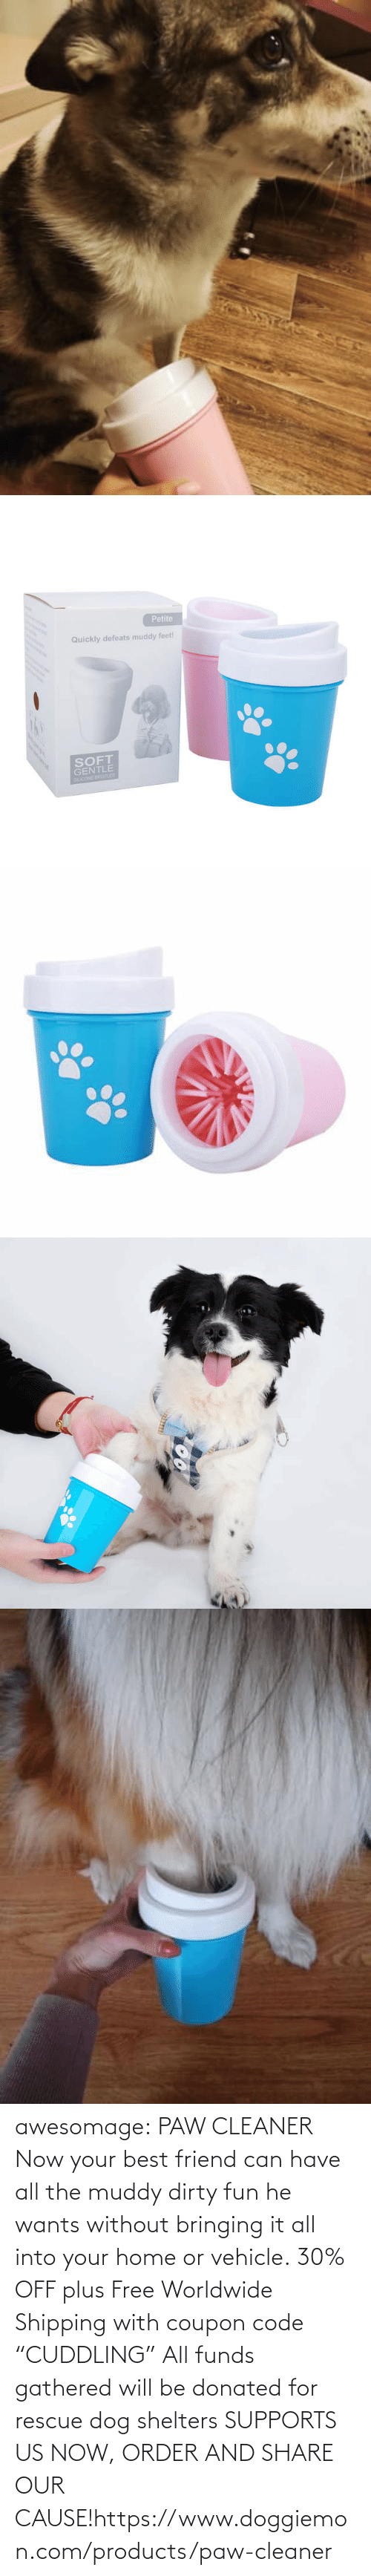 "Us: awesomage:   PAW CLEANER     Now your best friend can have all the muddy dirty fun he wants without bringing it all into your home or vehicle.    30% OFF plus Free Worldwide Shipping with coupon code ""CUDDLING""    All funds gathered will be donated for rescue dog shelters    SUPPORTS US NOW, ORDER AND SHARE OUR CAUSE!https://www.doggiemon.com/products/paw-cleaner"